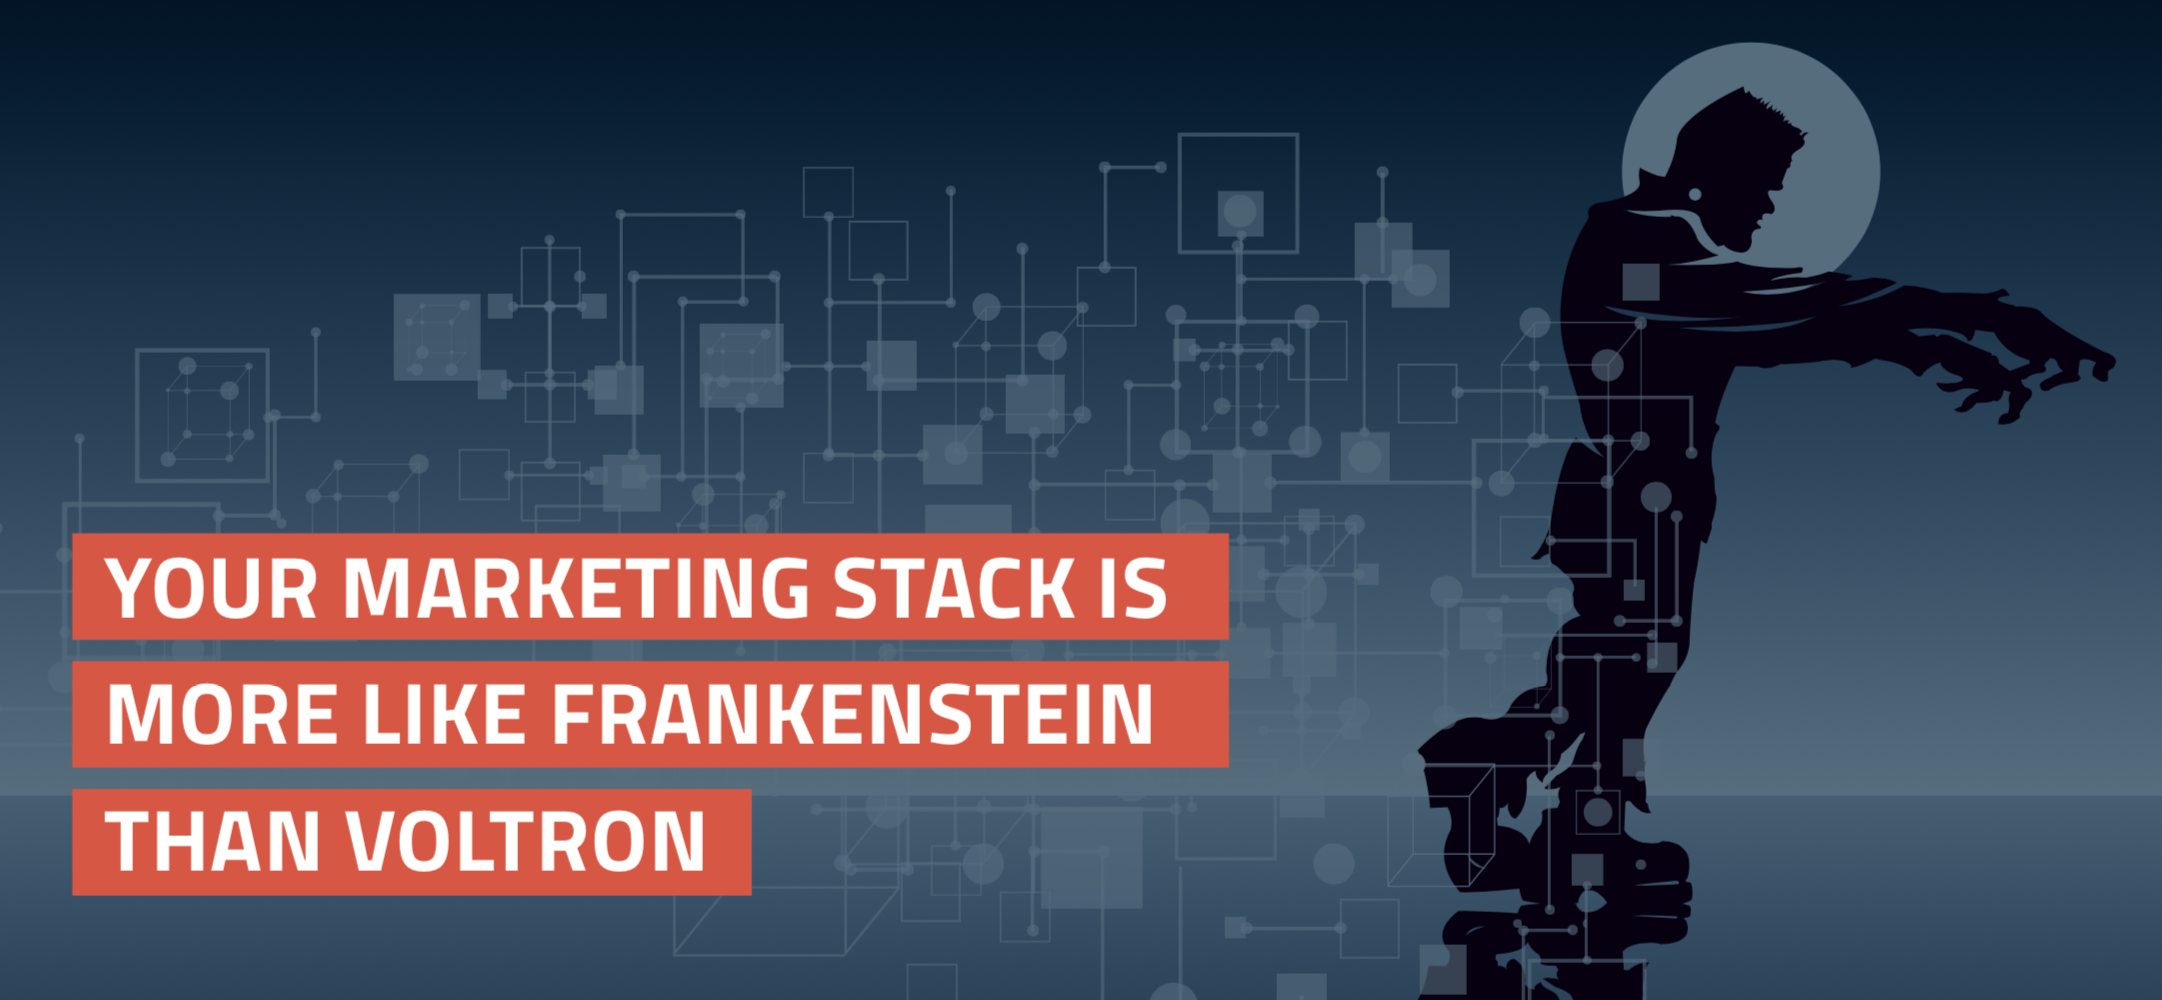 eBook: Your Marketing Stack Is More Like Frankenstein Than Voltron